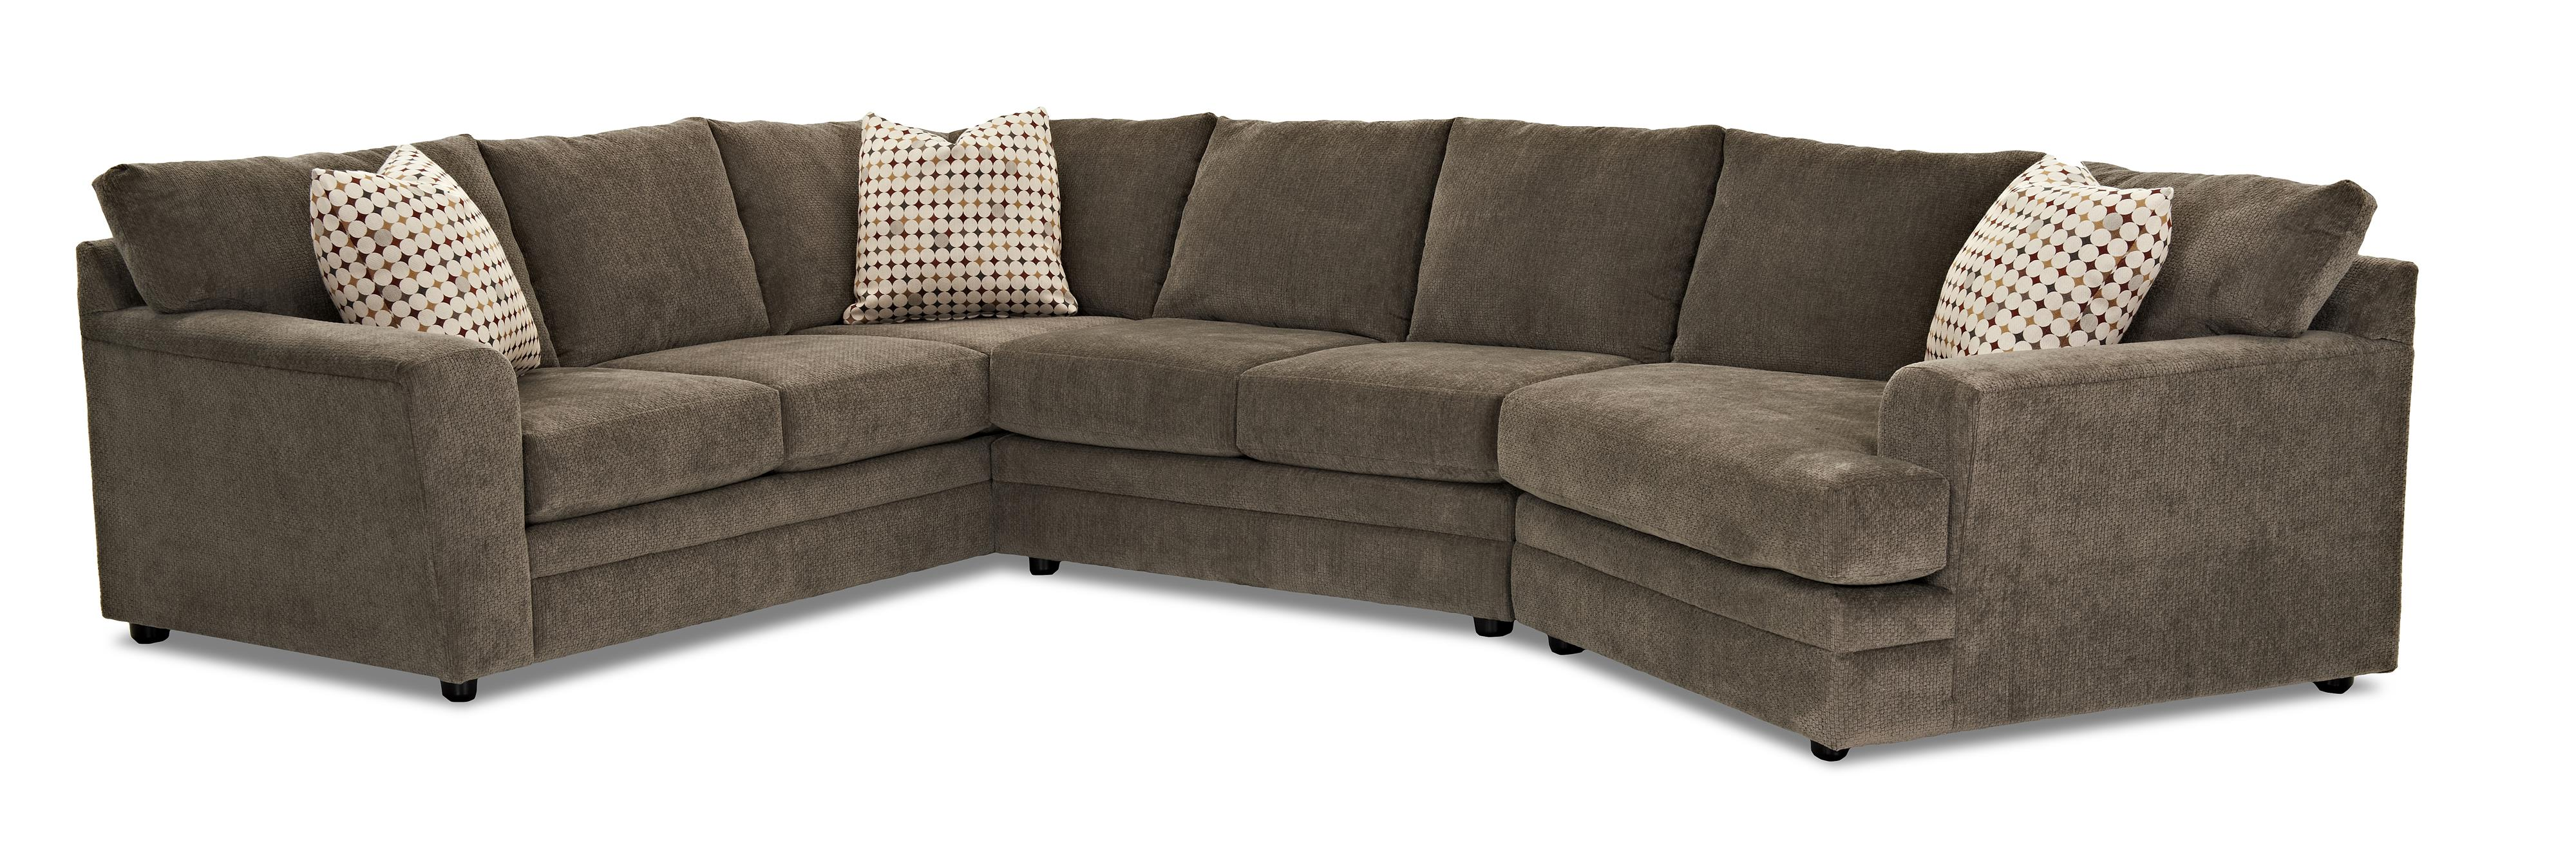 Klaussner Ashburn Casual Sectional Sofa Group Olinde s Furniture